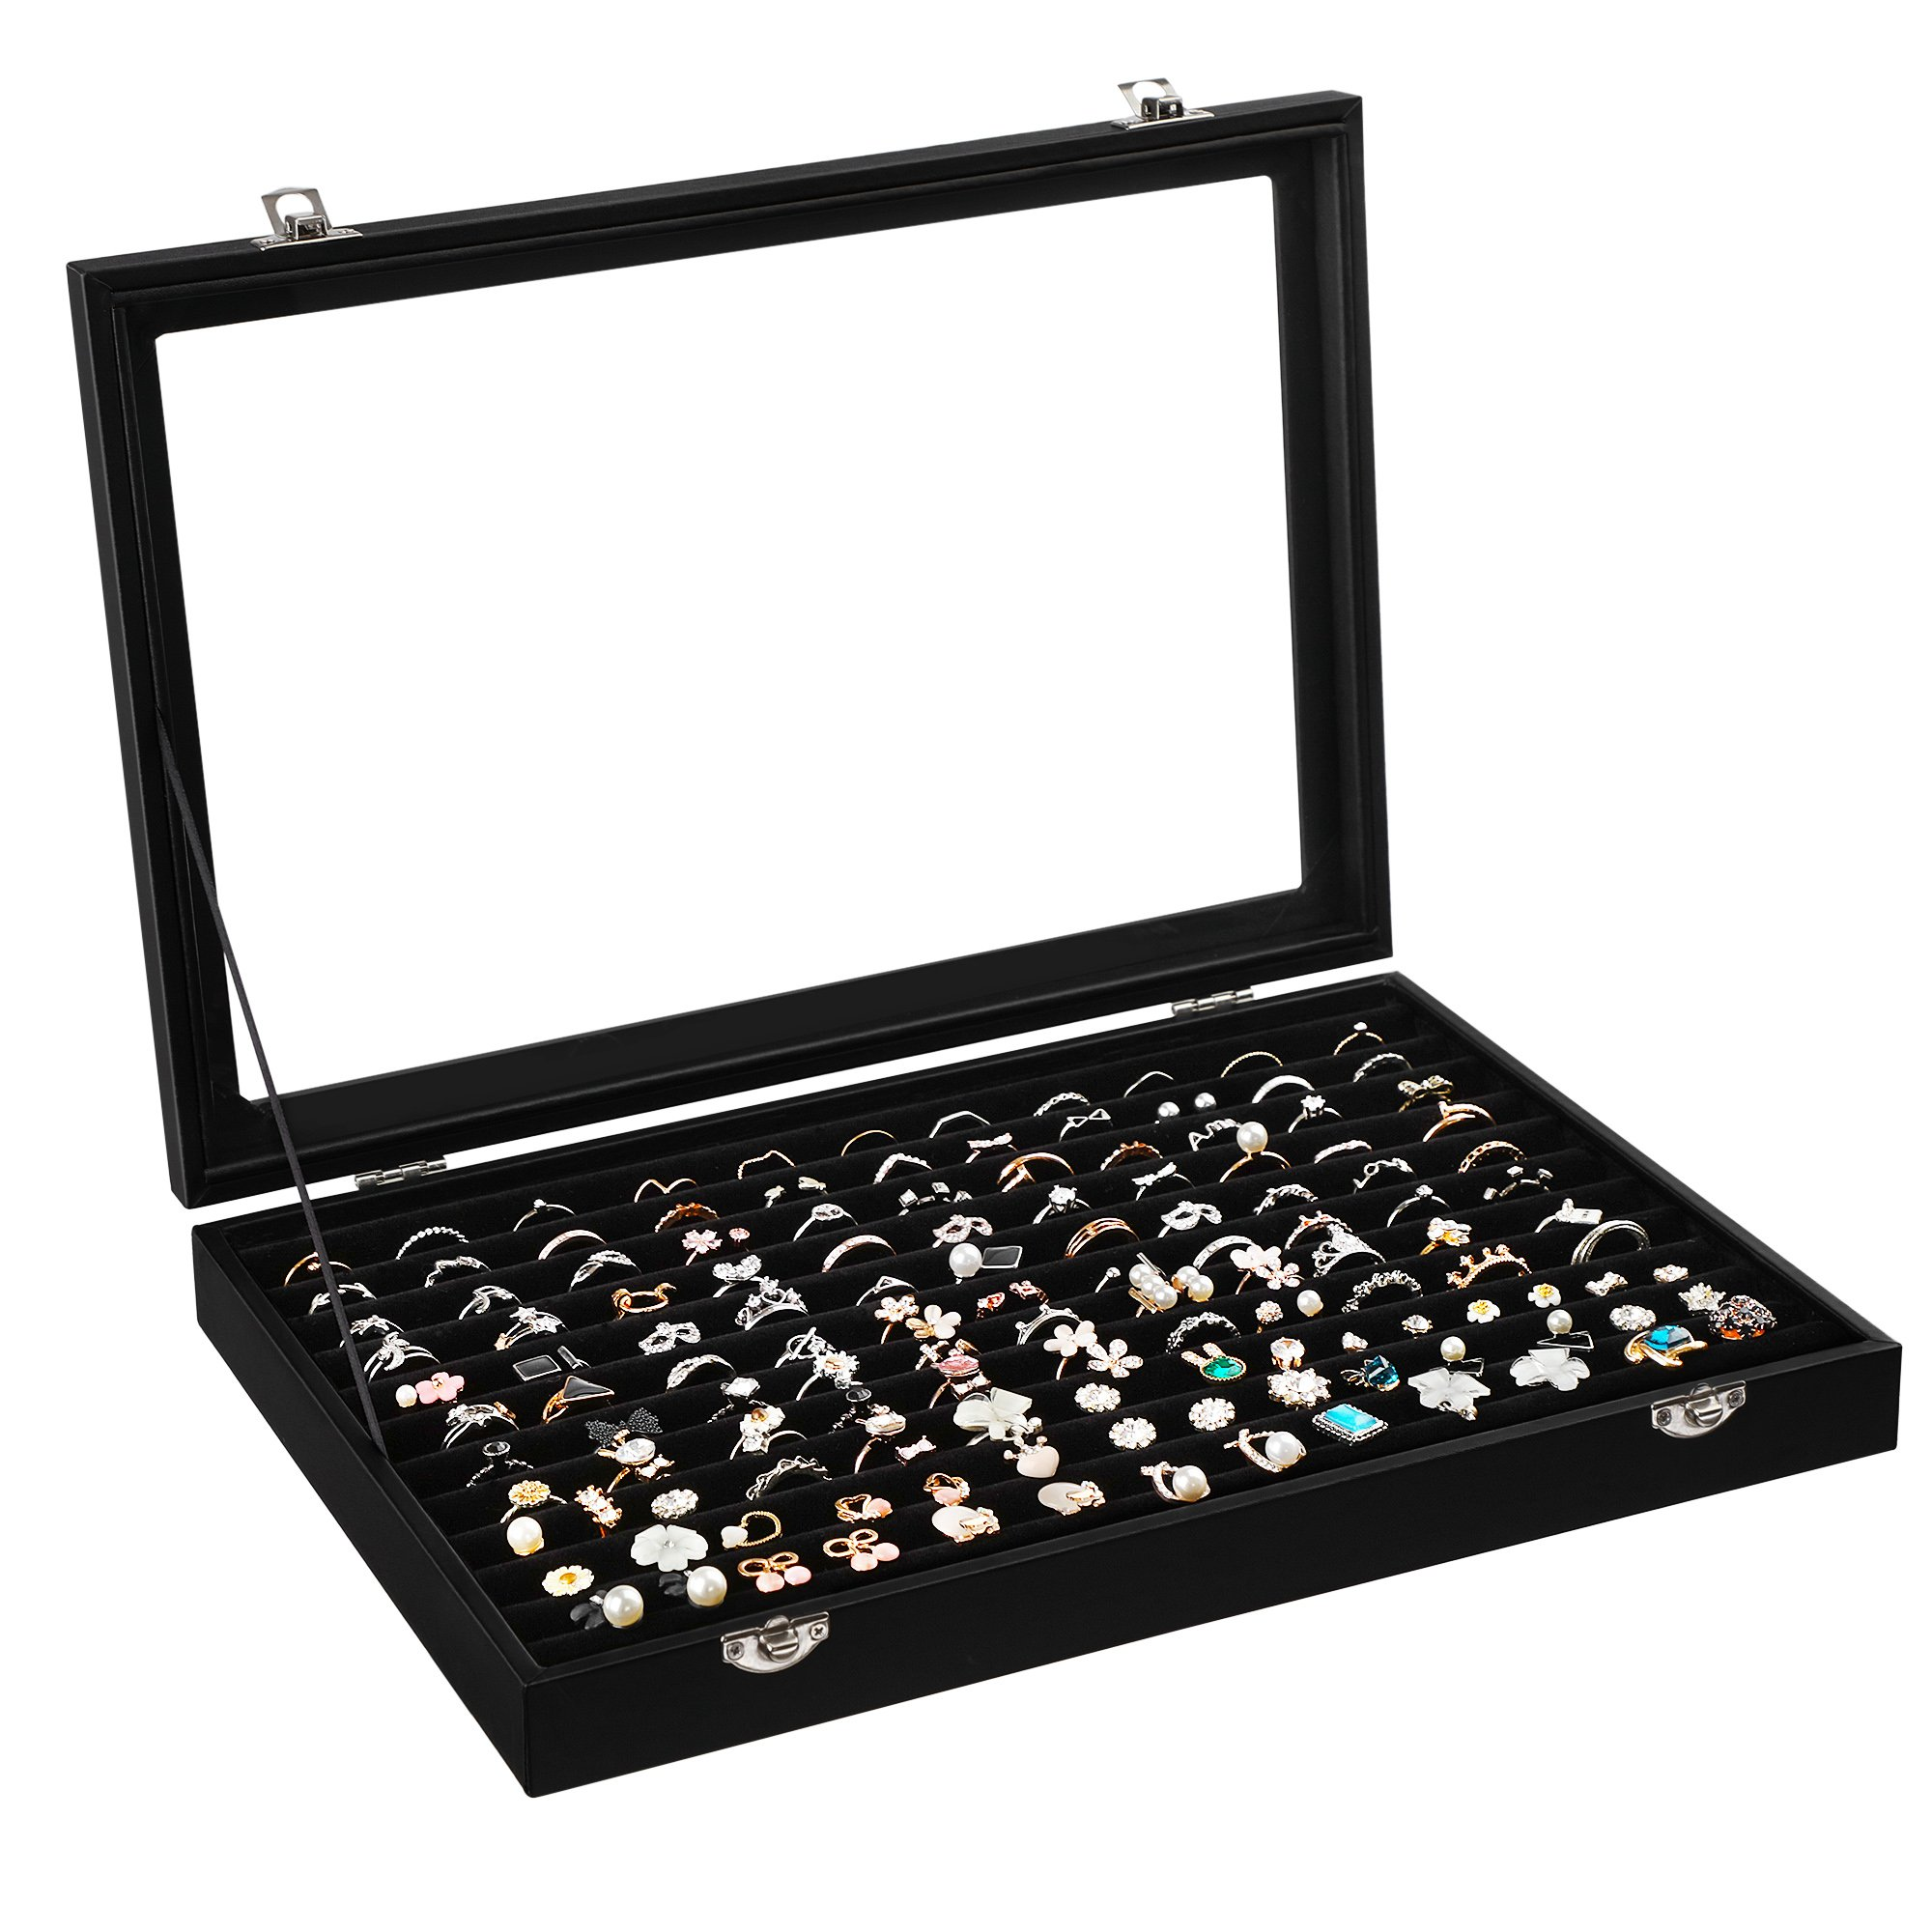 SONGMICS 120 Ring Display Case 11 Rows Jewerly Organizer Earring Showcase Box with Glass Lid Black UJDS301